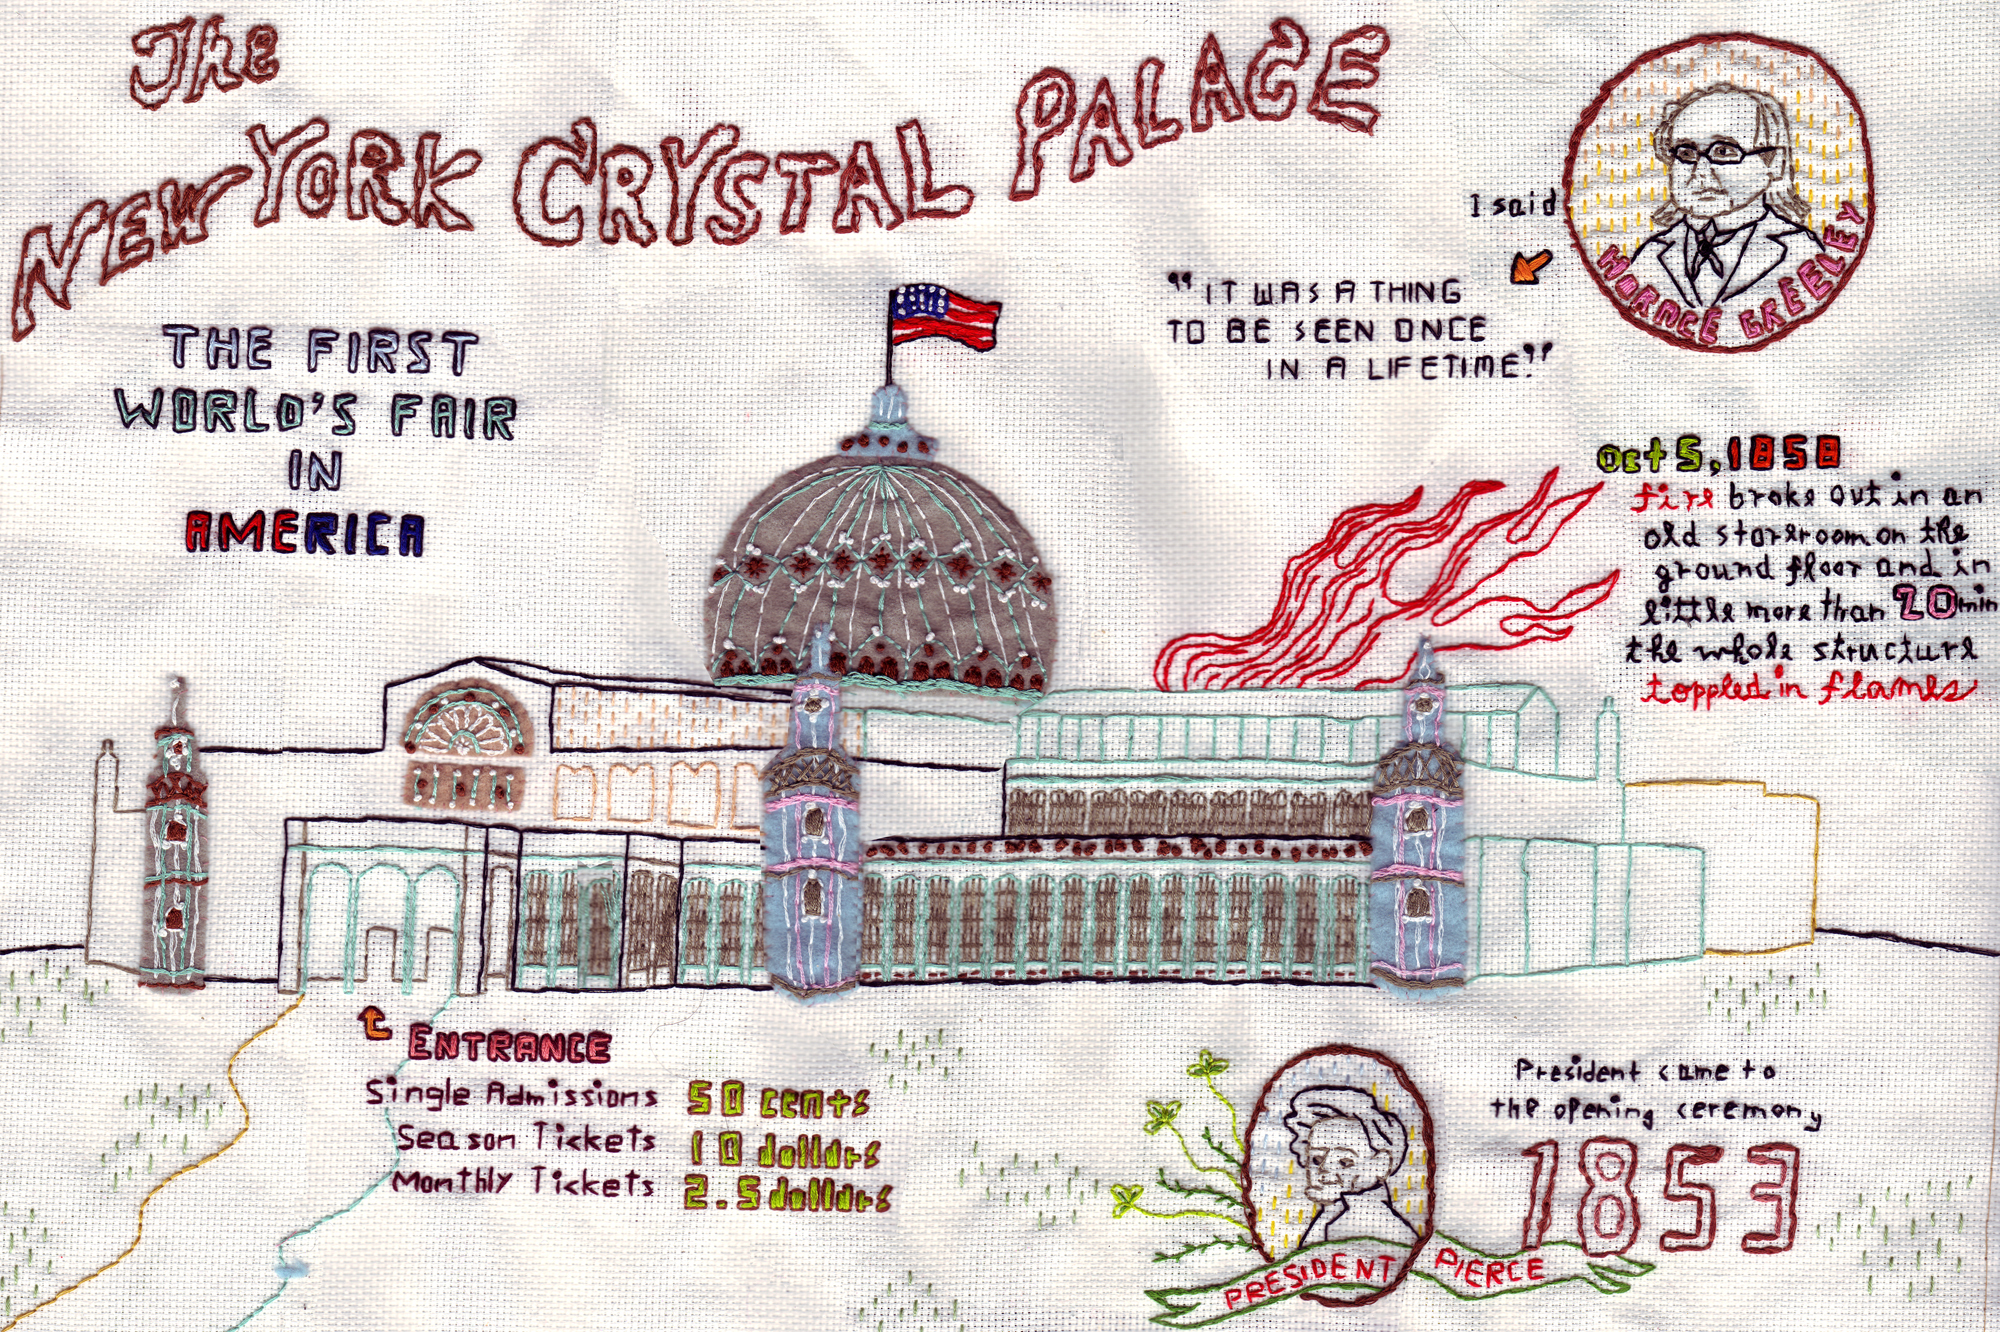 History of the Cristal Palace